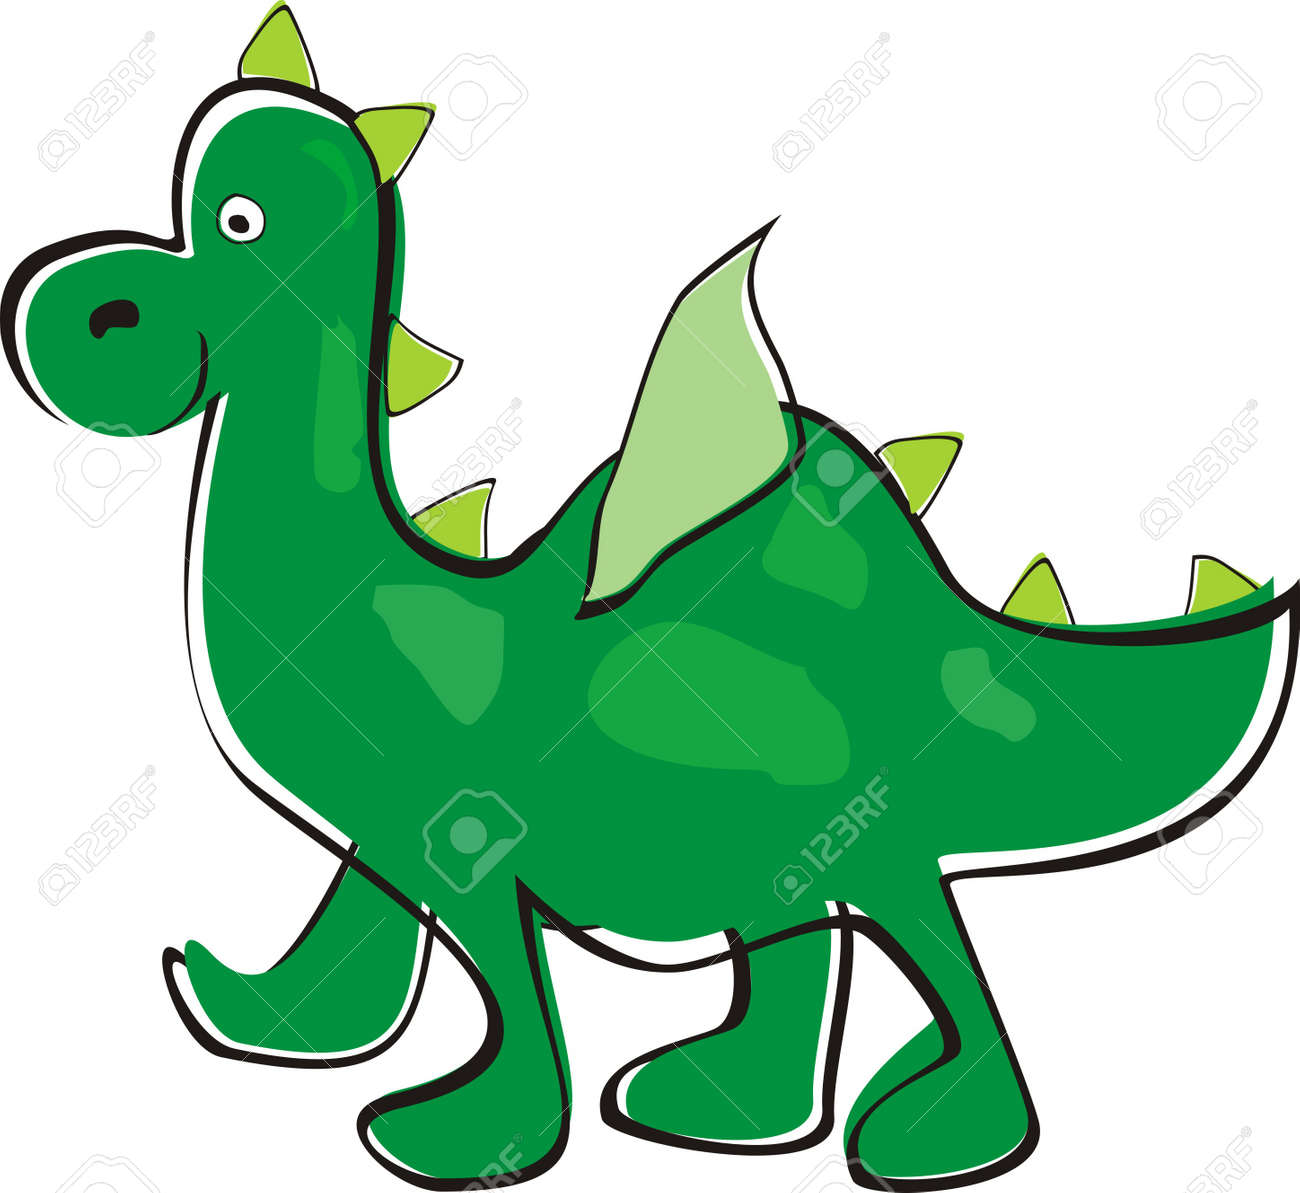 Green dragon  Children s drawing Stock Vector - 21316887